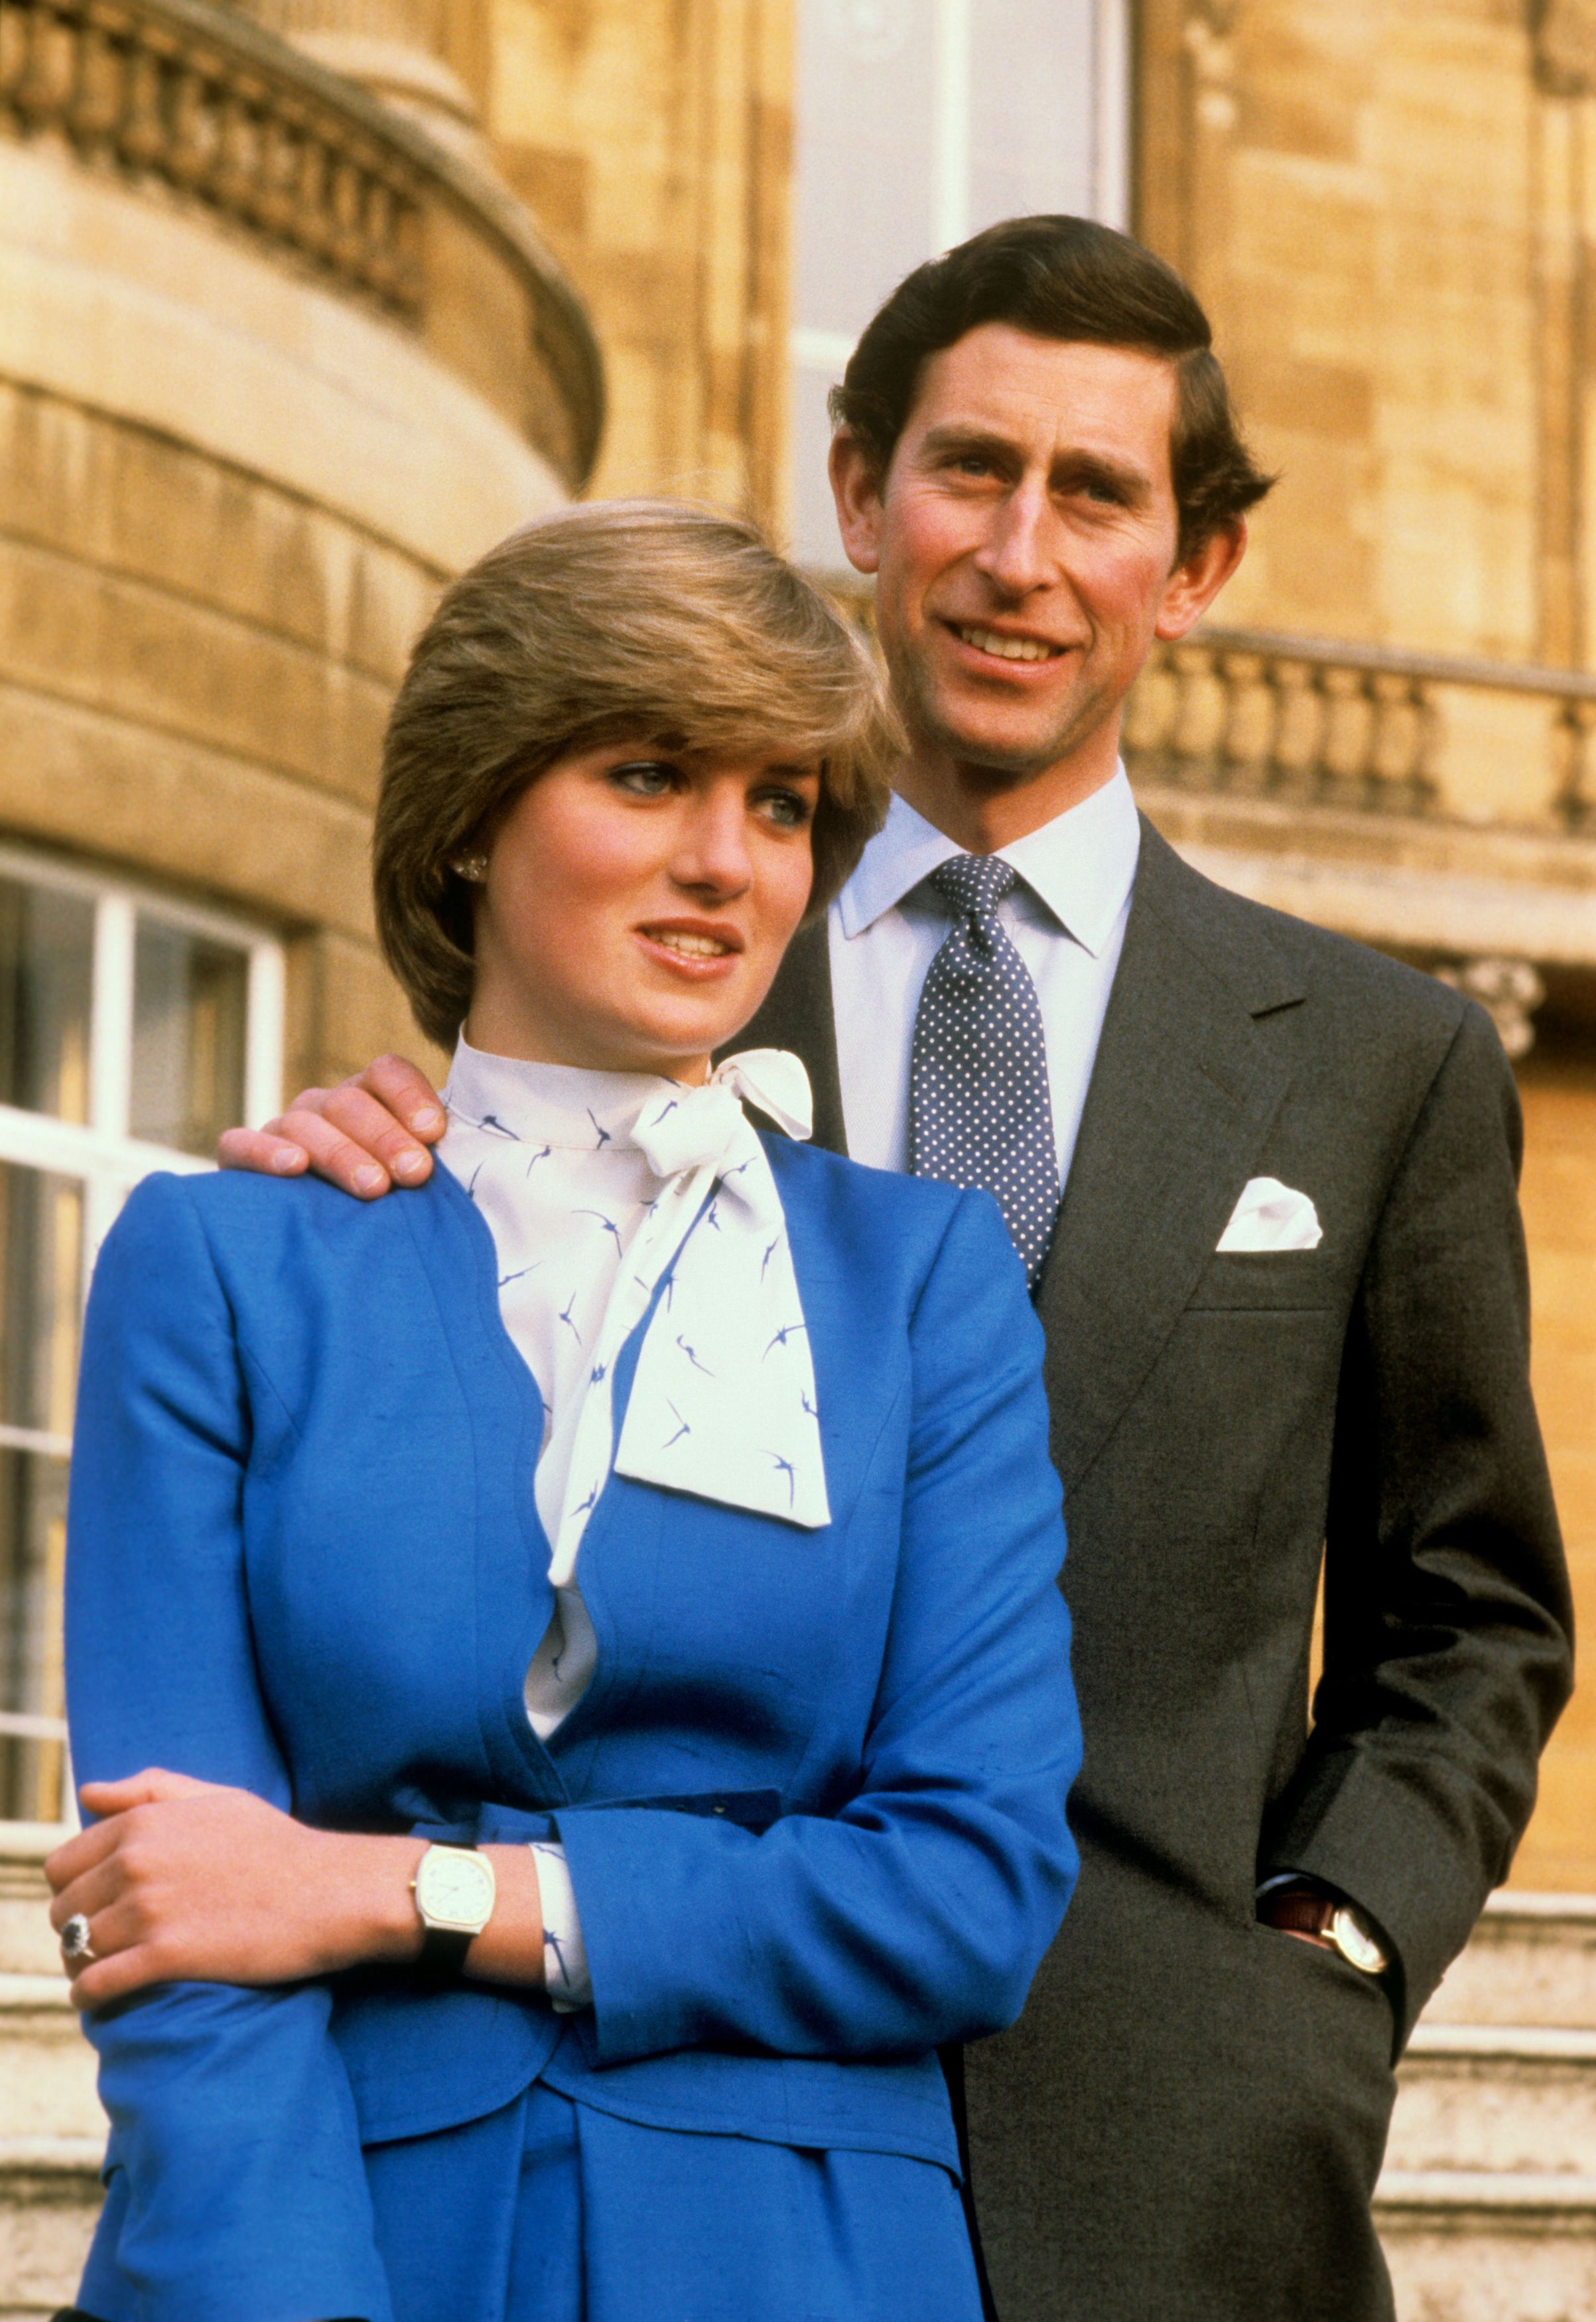 Princess Diana opened up about her marriage to Prince Charles in the